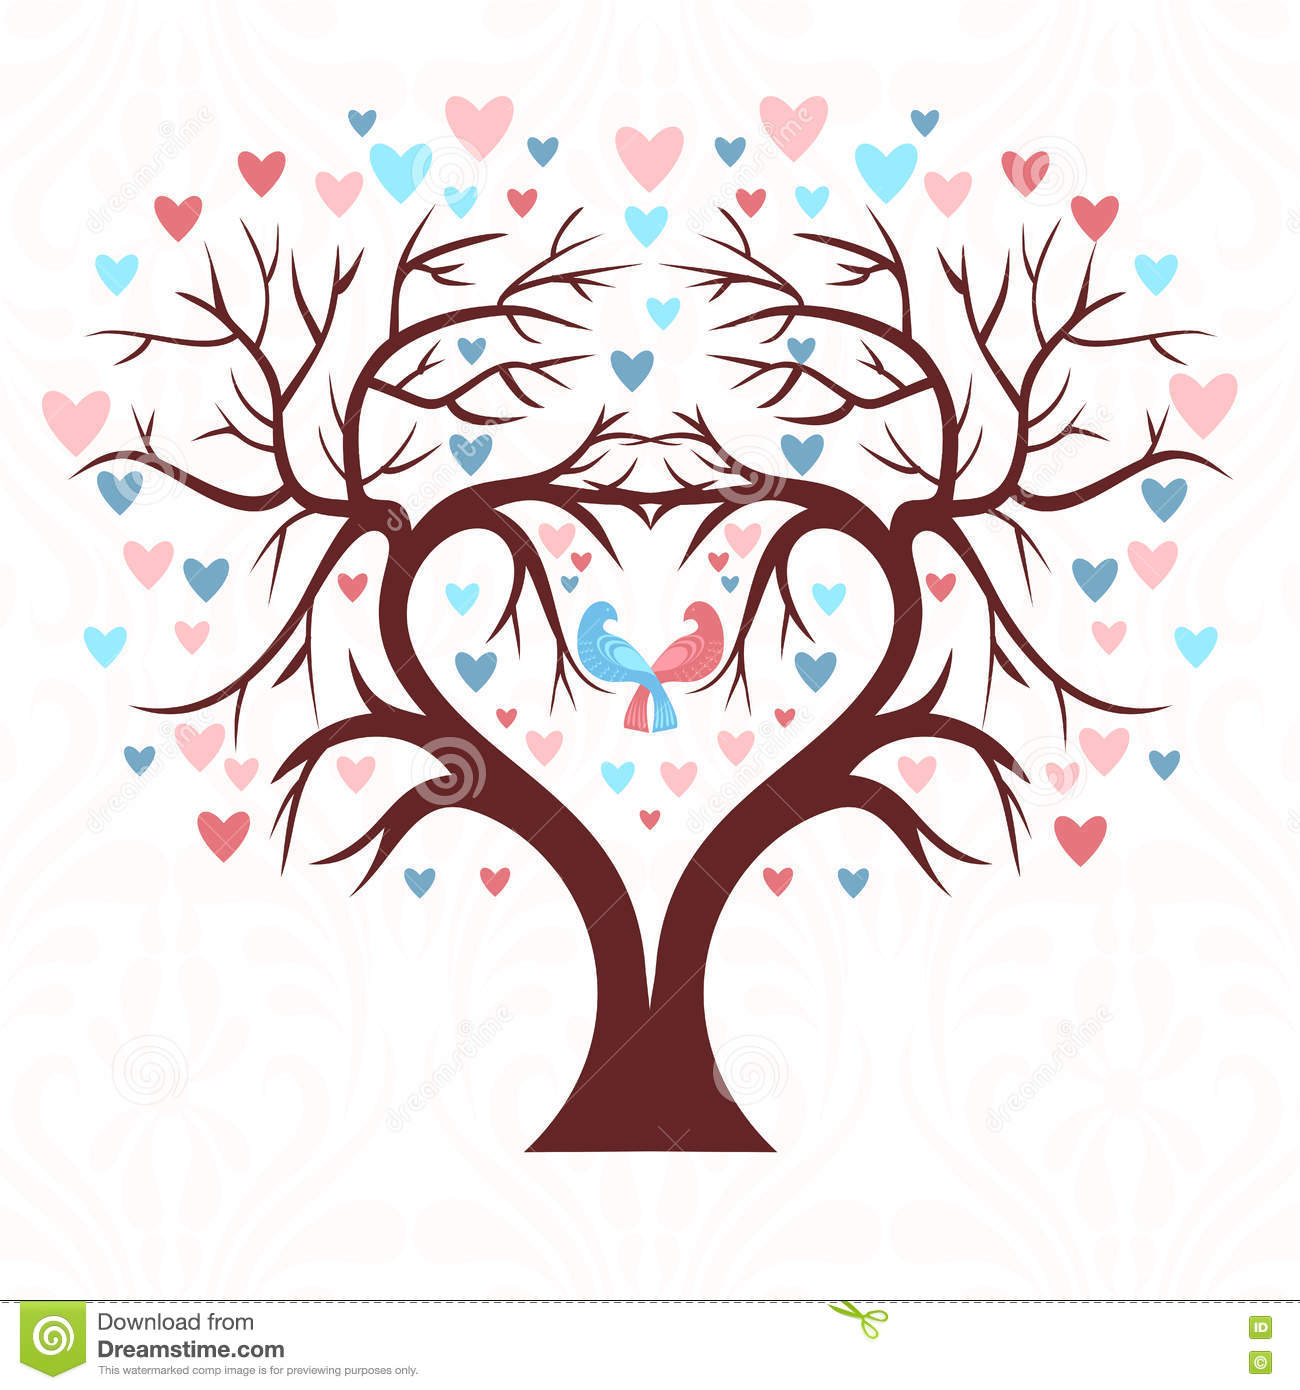 Wedding Tree Vector: The Wedding Tree In The Shape Of A Heart With Two Birds